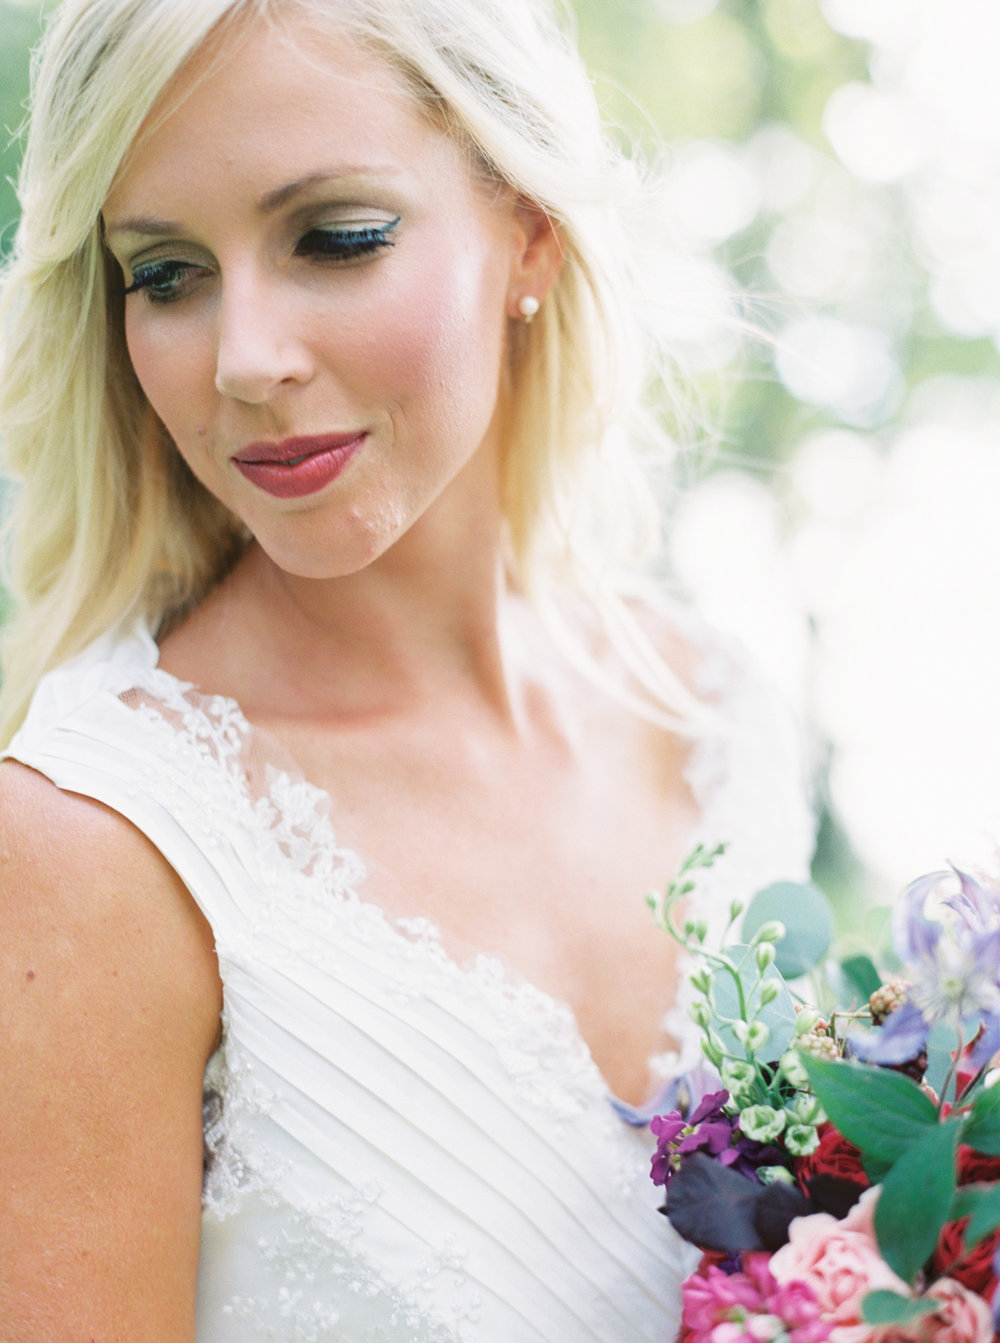 EmilyAnnHughesPhotography_Elopement-034.jpg